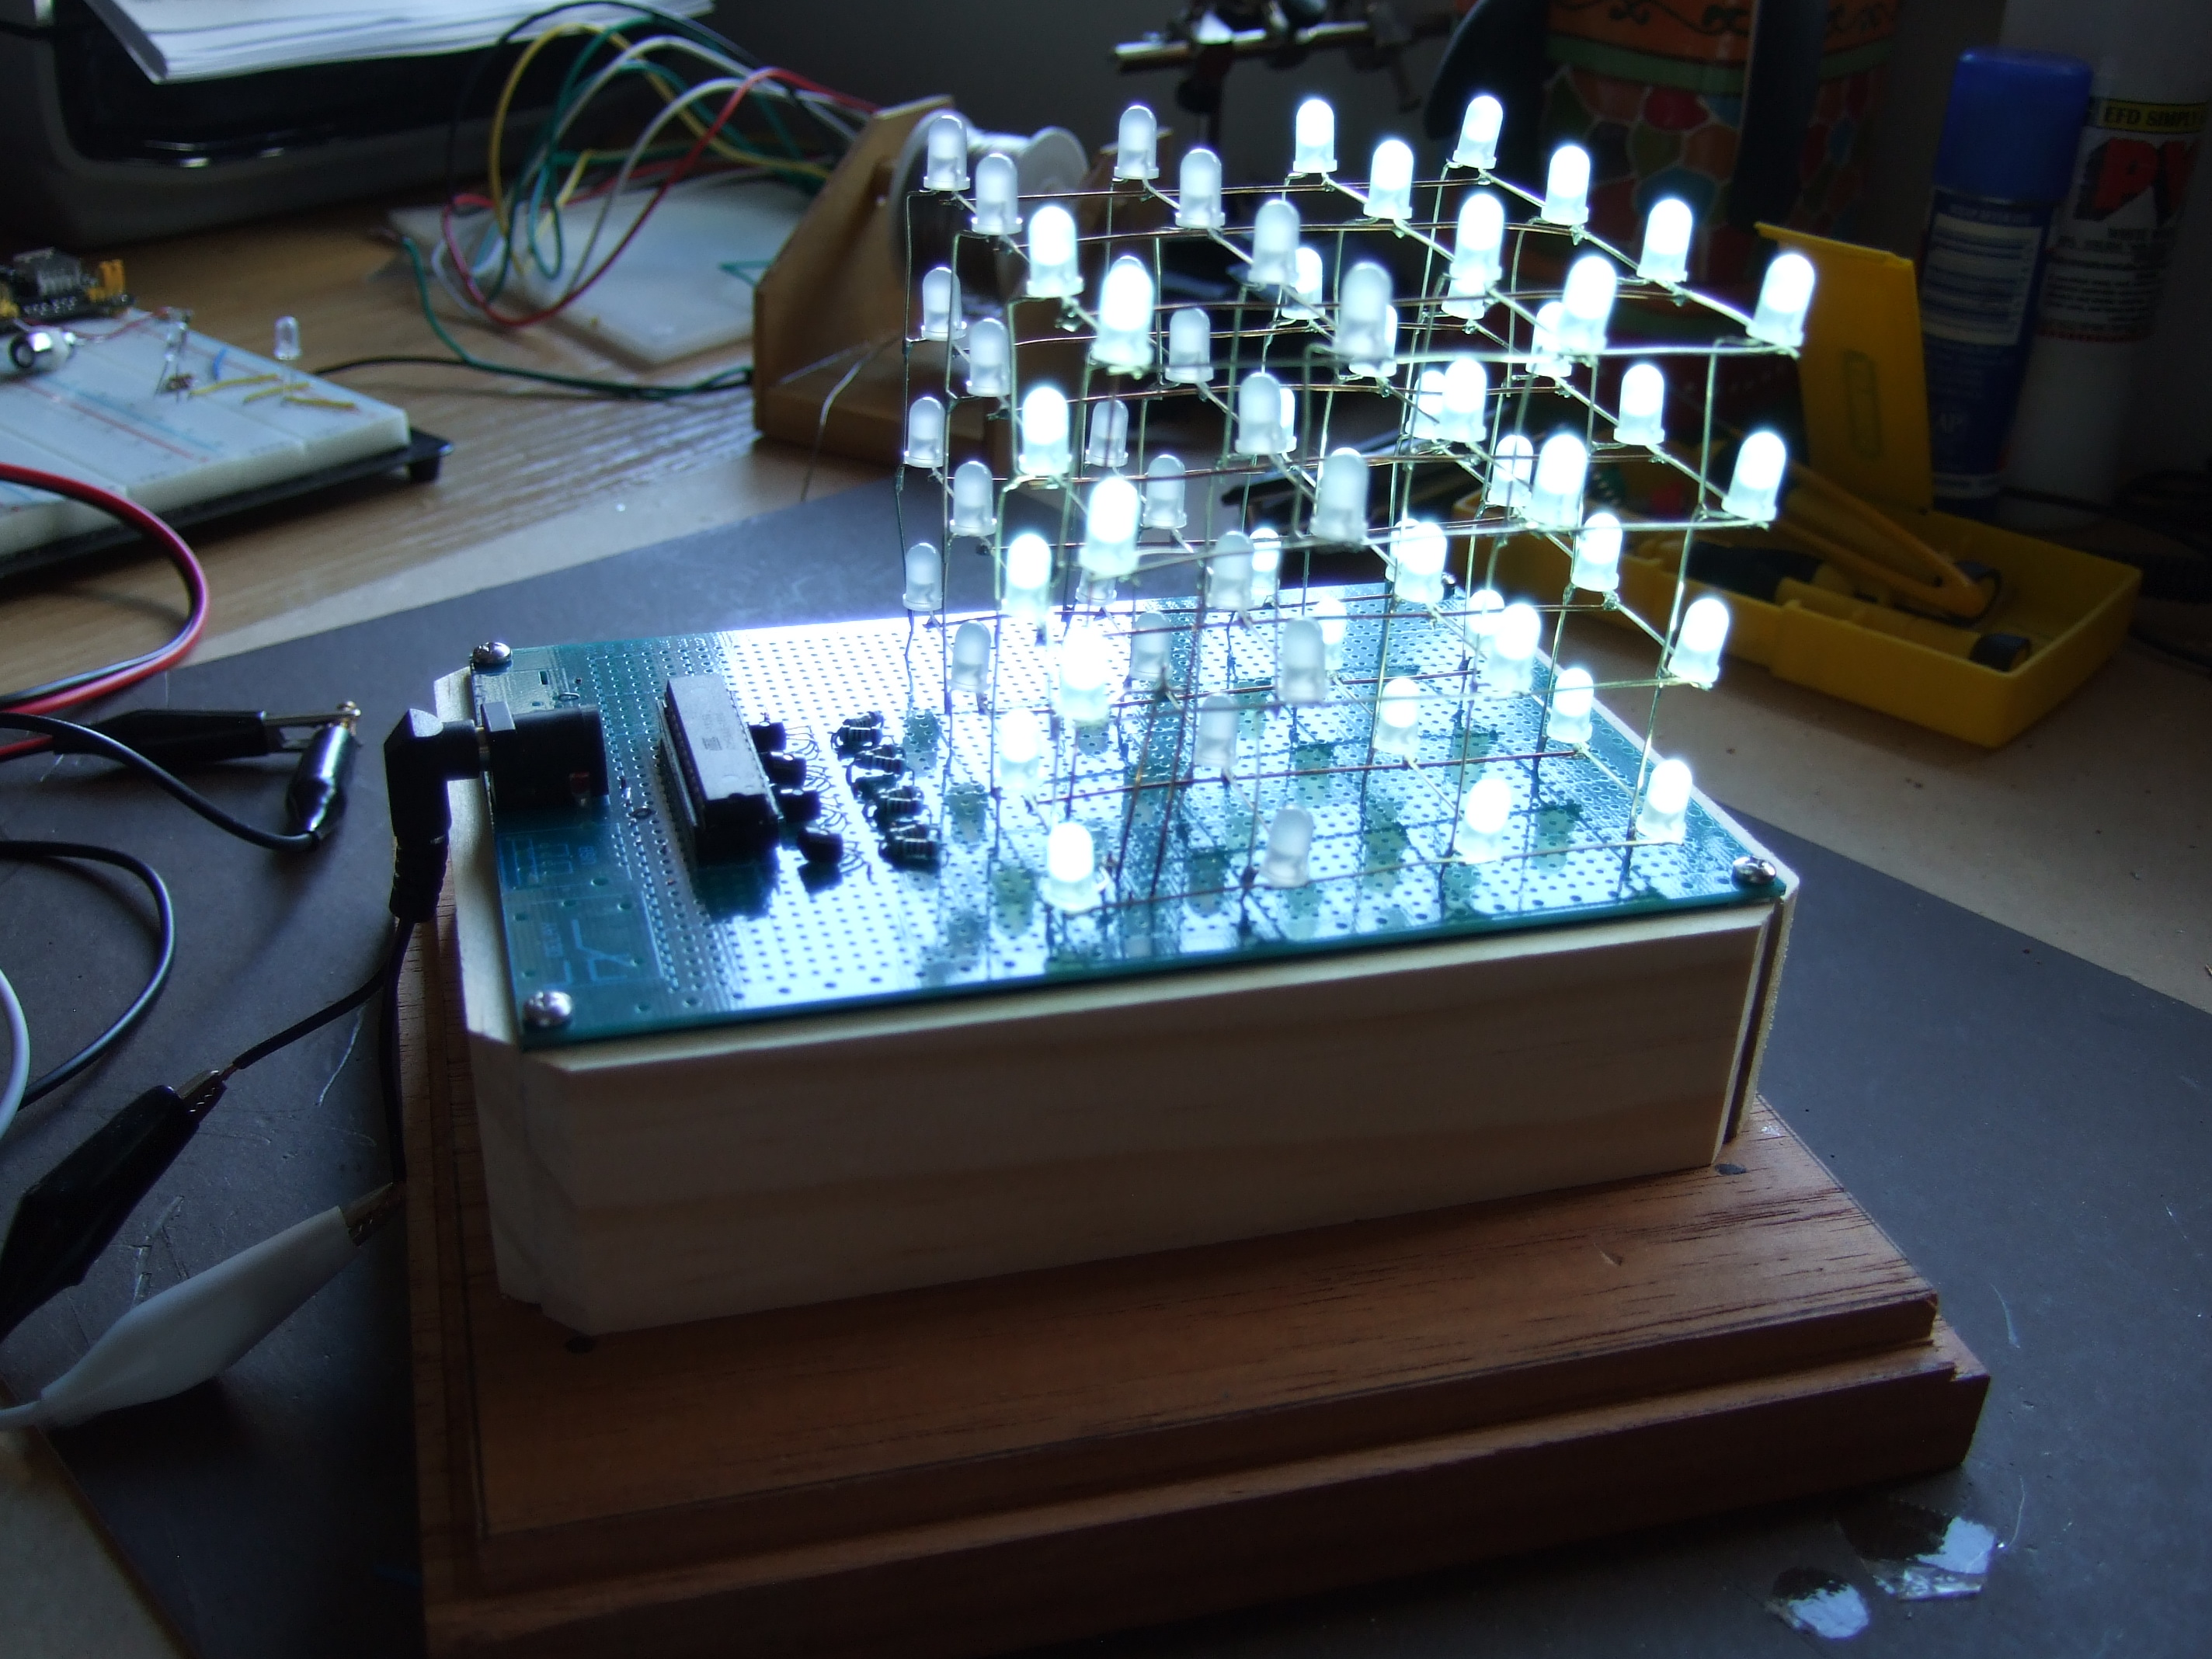 The One Chip LED Cube